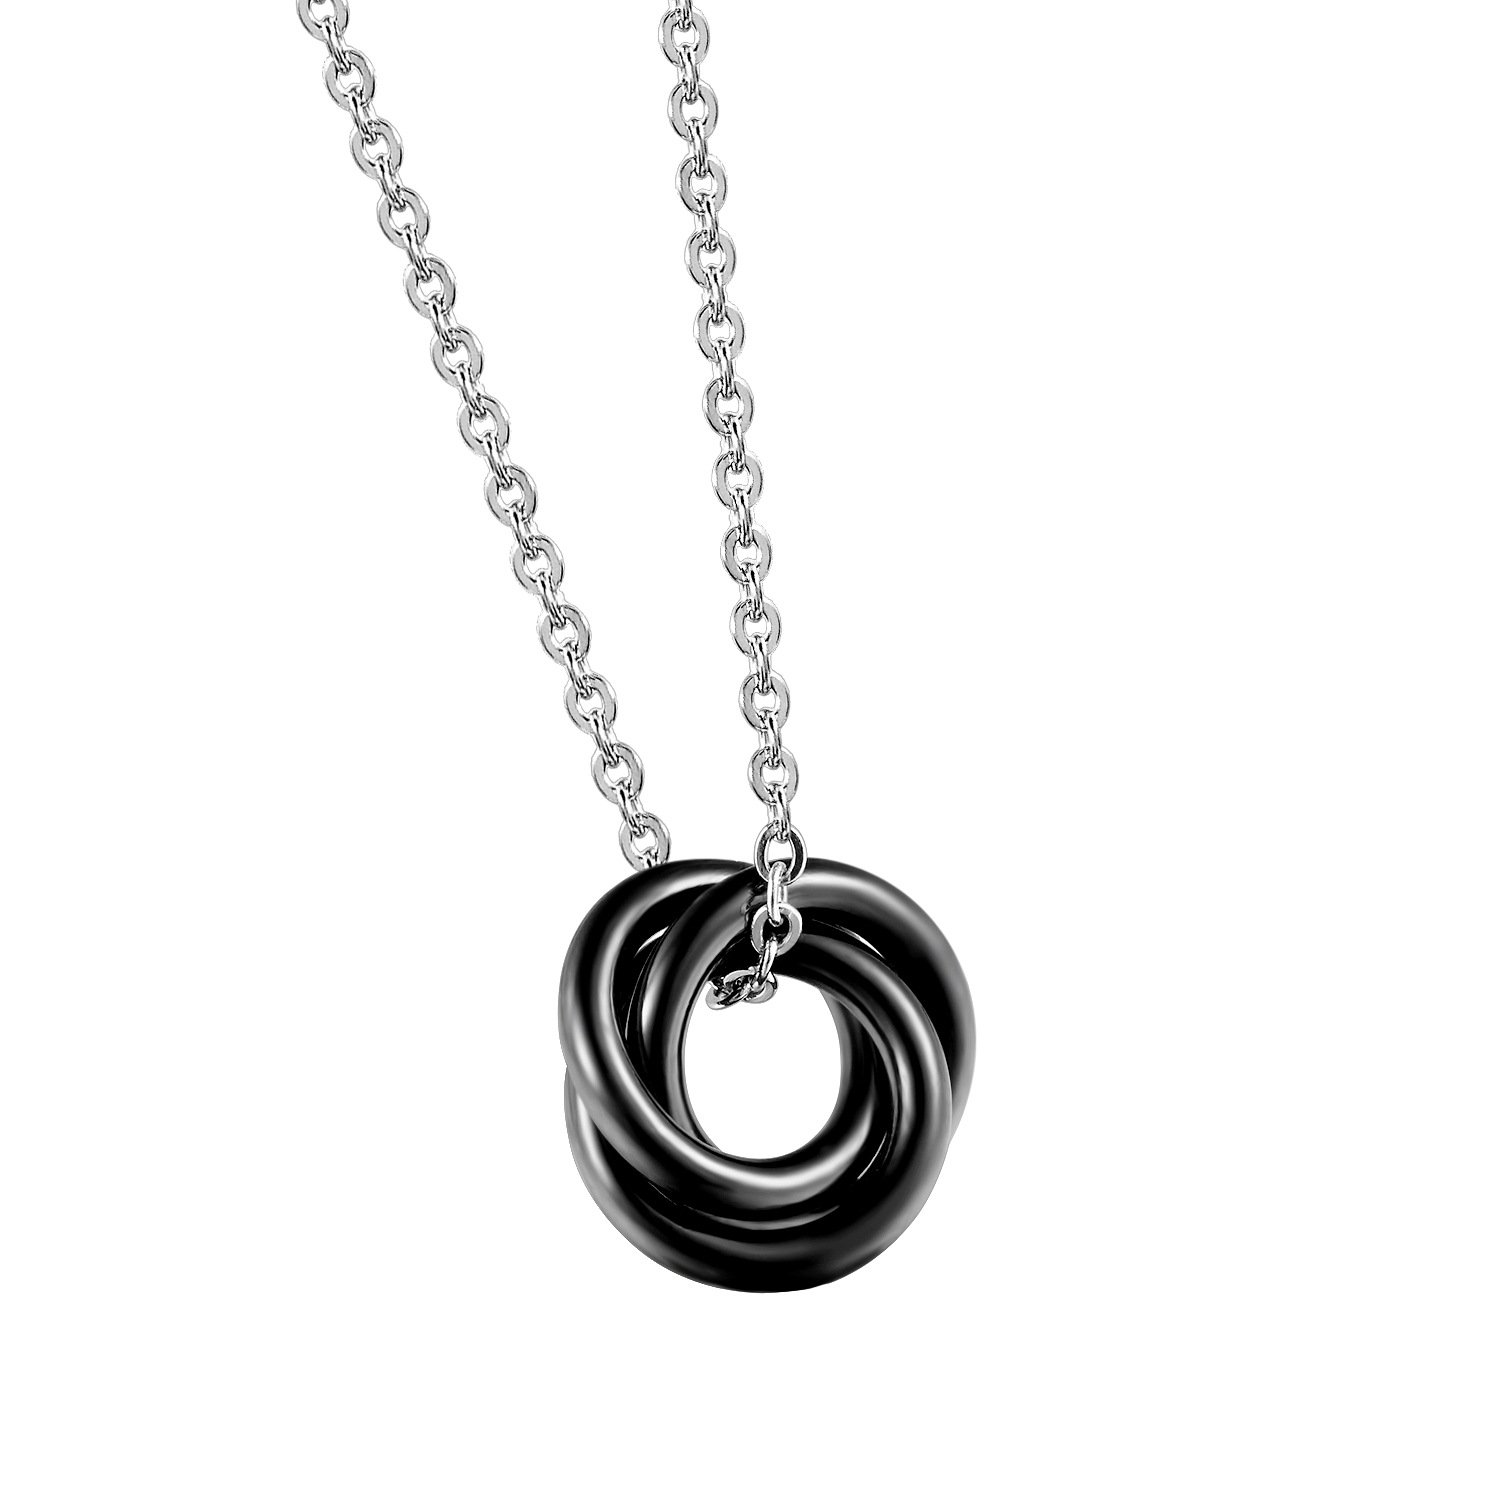 FEYCH His /& Hers Matching Set Titanium Stainless Steel Couple Pendant Necklace Korean Love Style with a Lucky Bean Price for 1 PCS